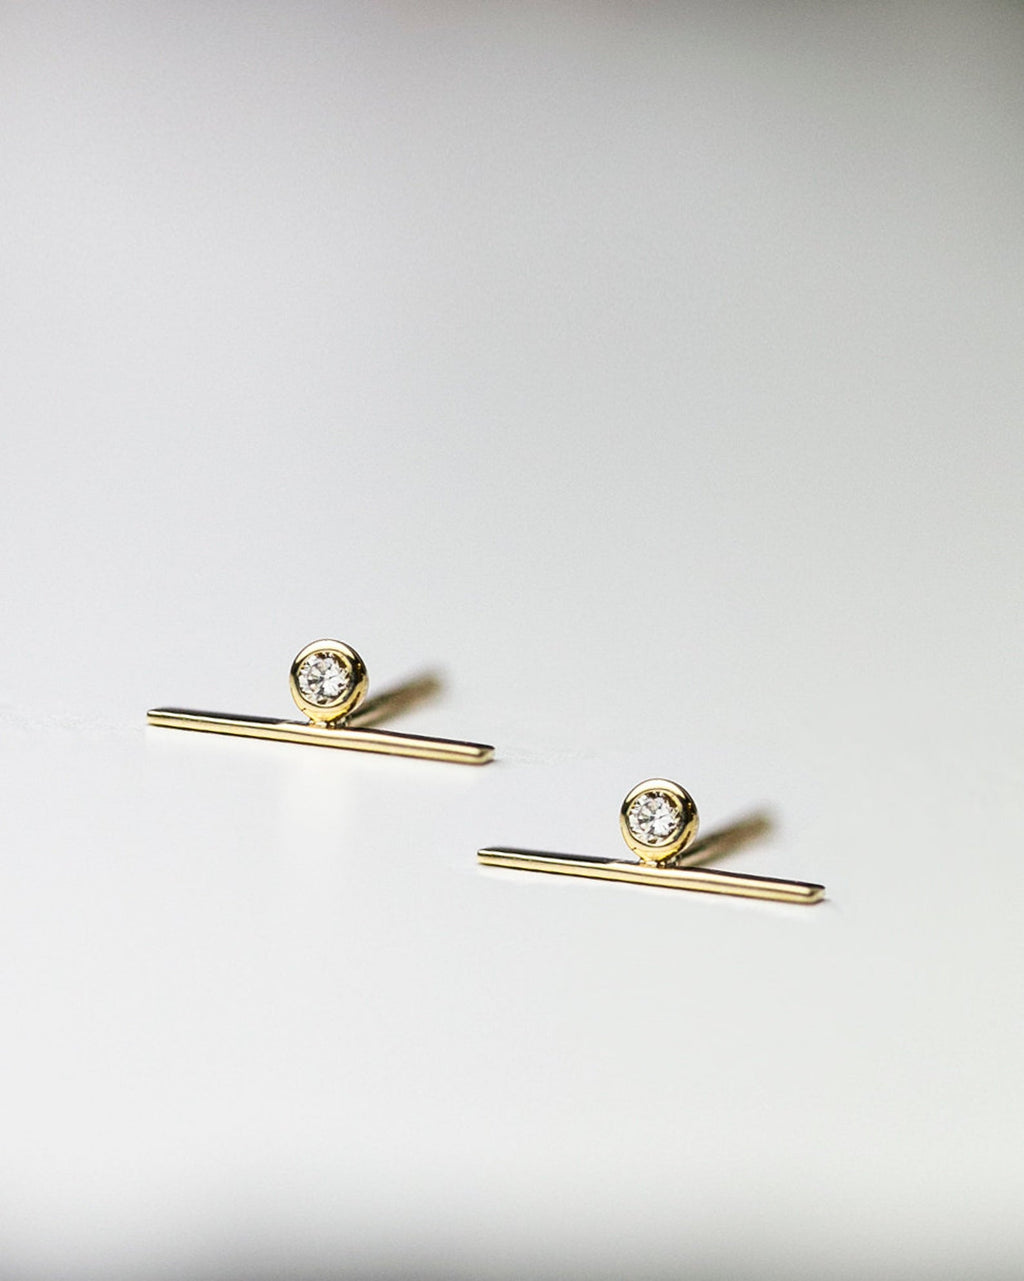 14k Lind bar studs with diamond accent